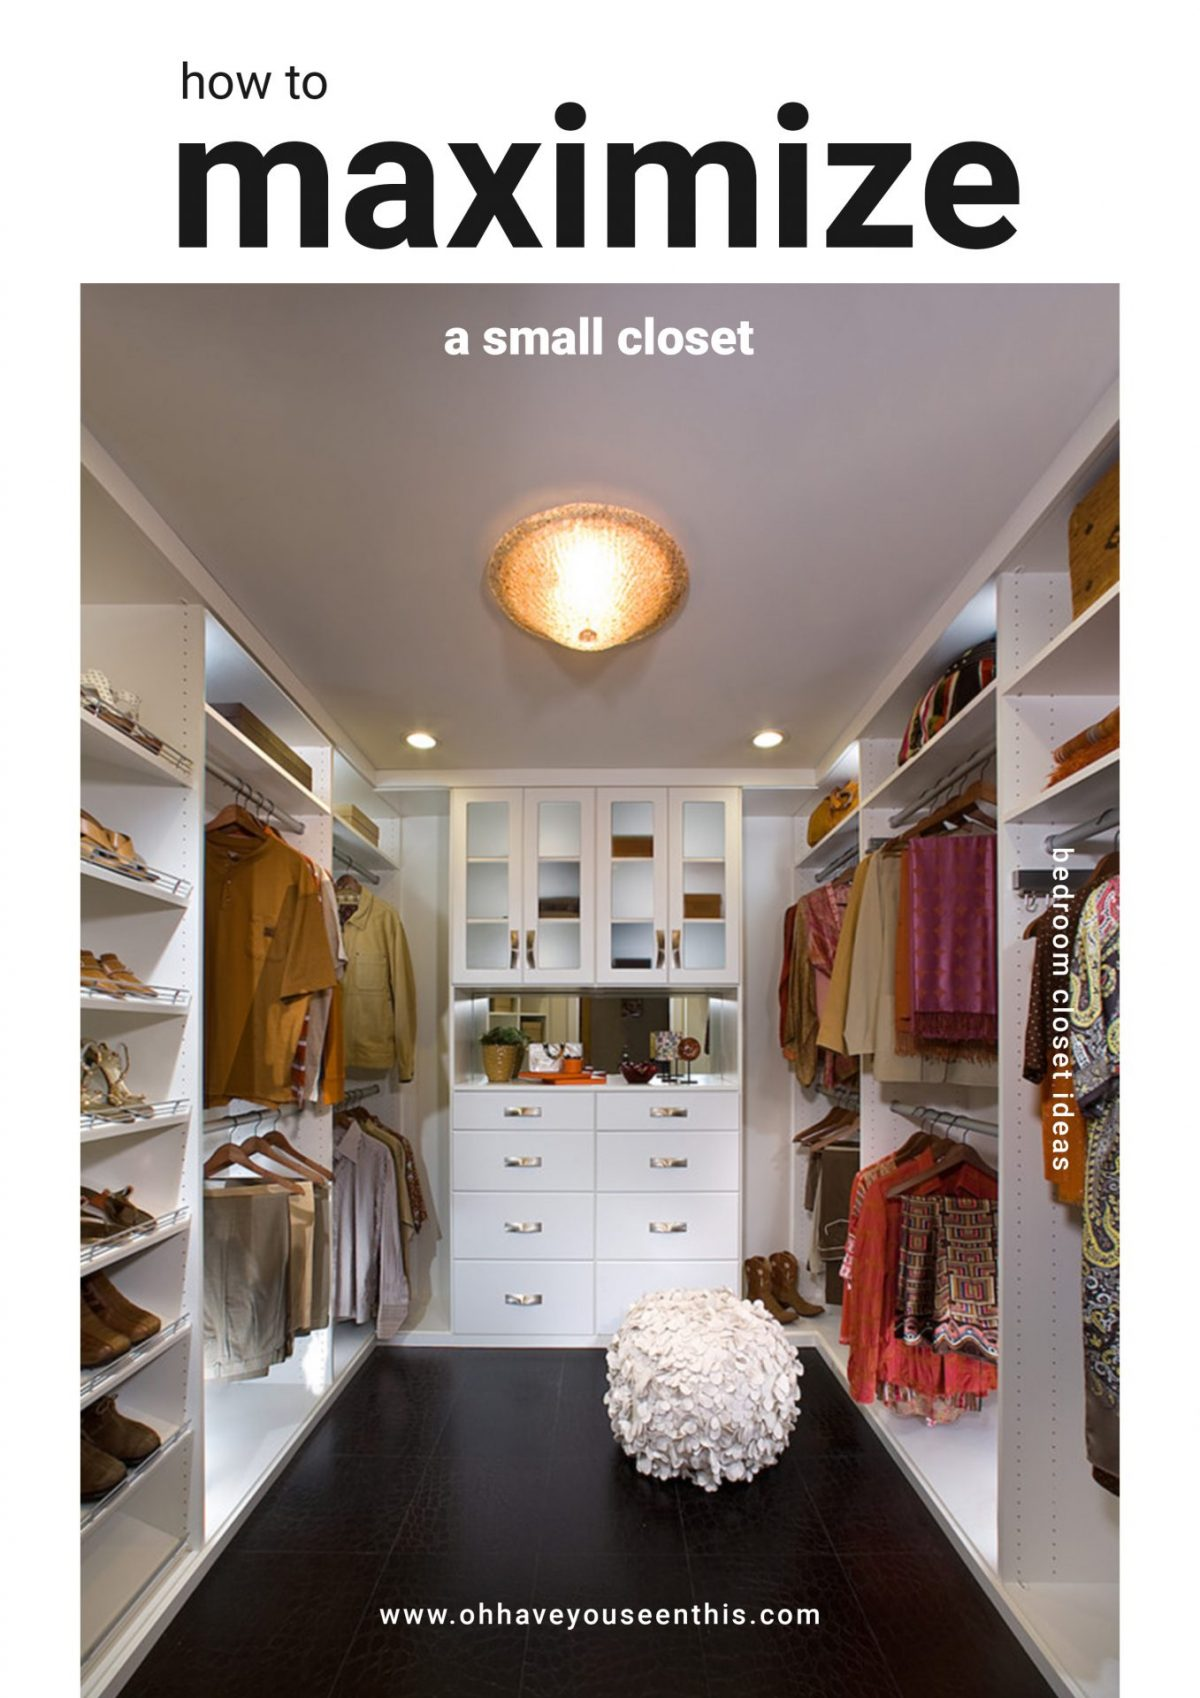 Bedroom Closet Ideas for Maximizing Small Space - The Good Luck Duck